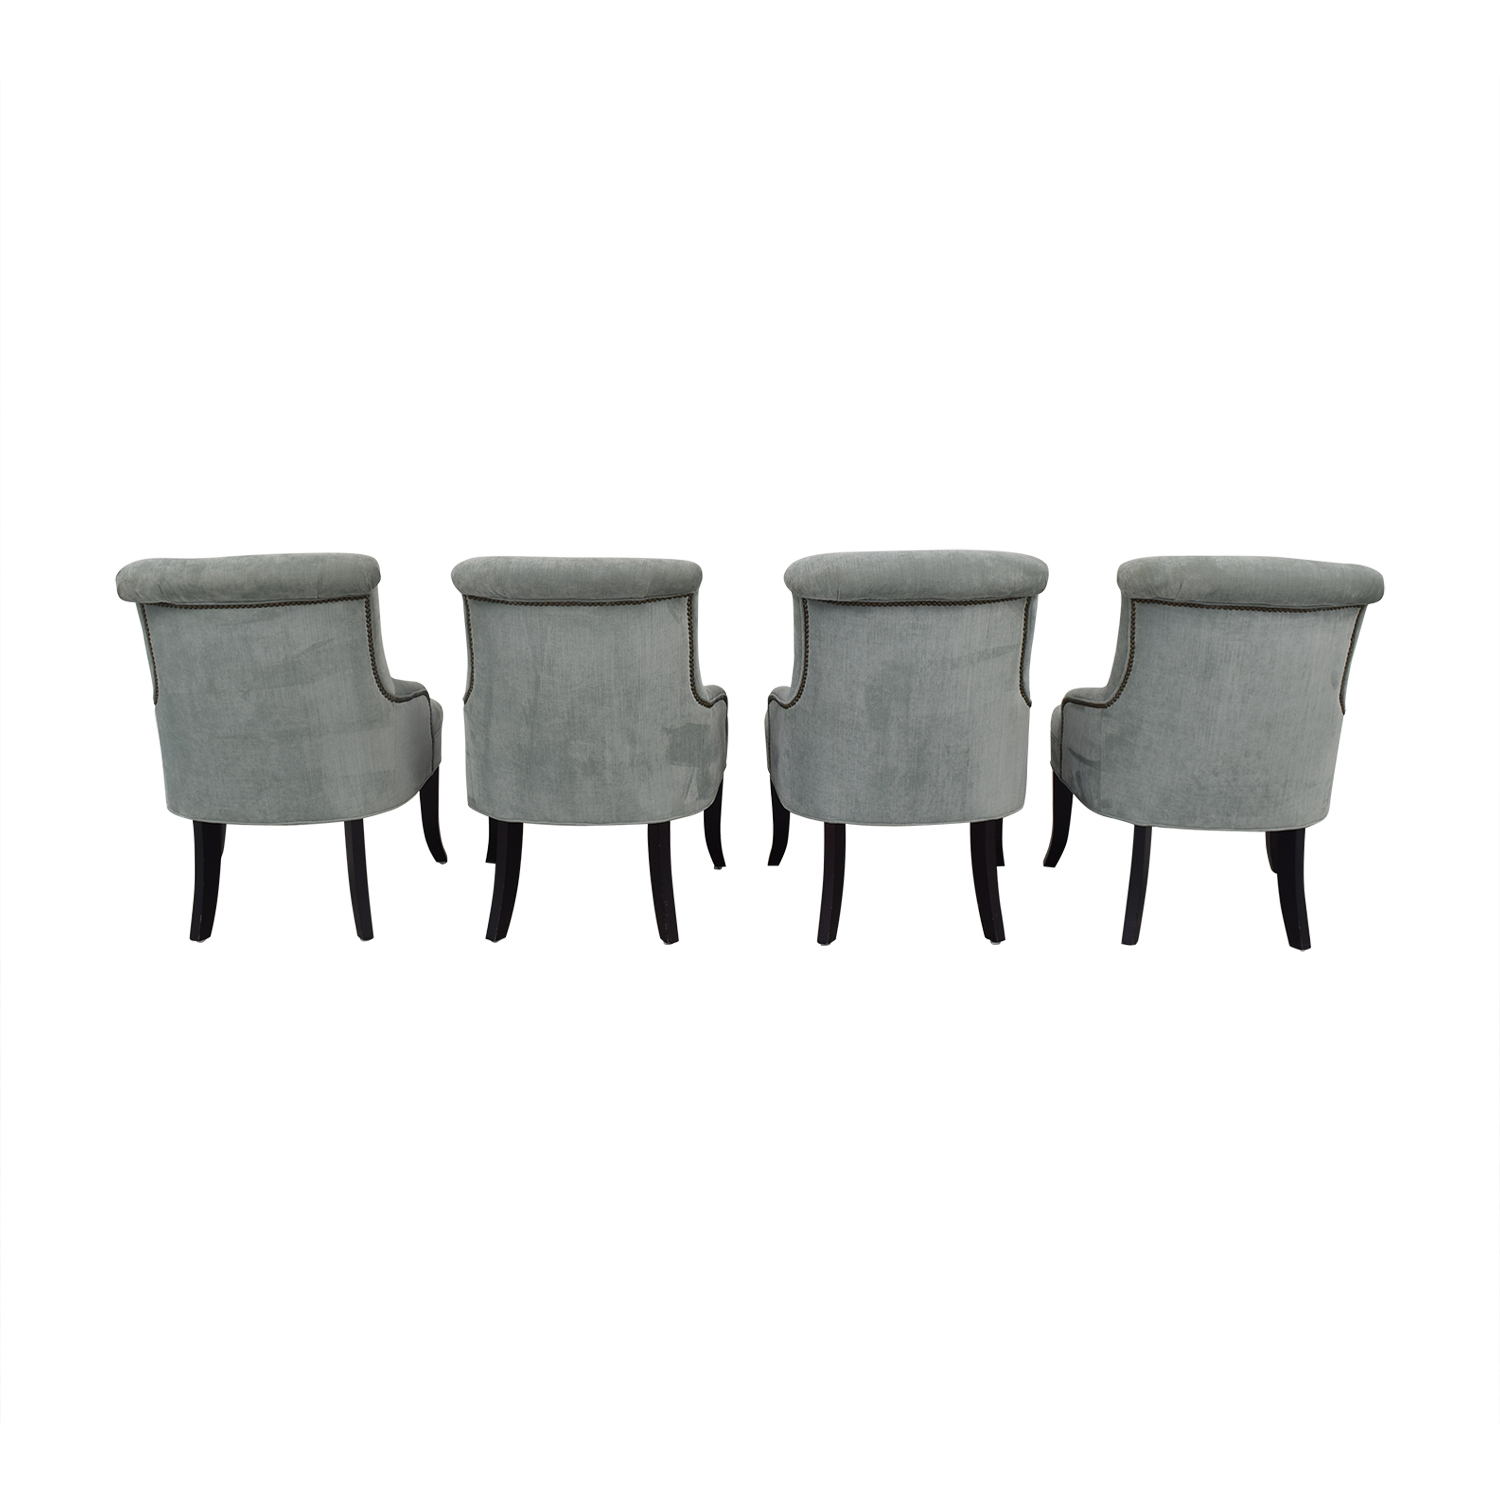 Mitchell Gold + Bob Williams Mitchell Gold + Bob Williams Dining Chairs coupon